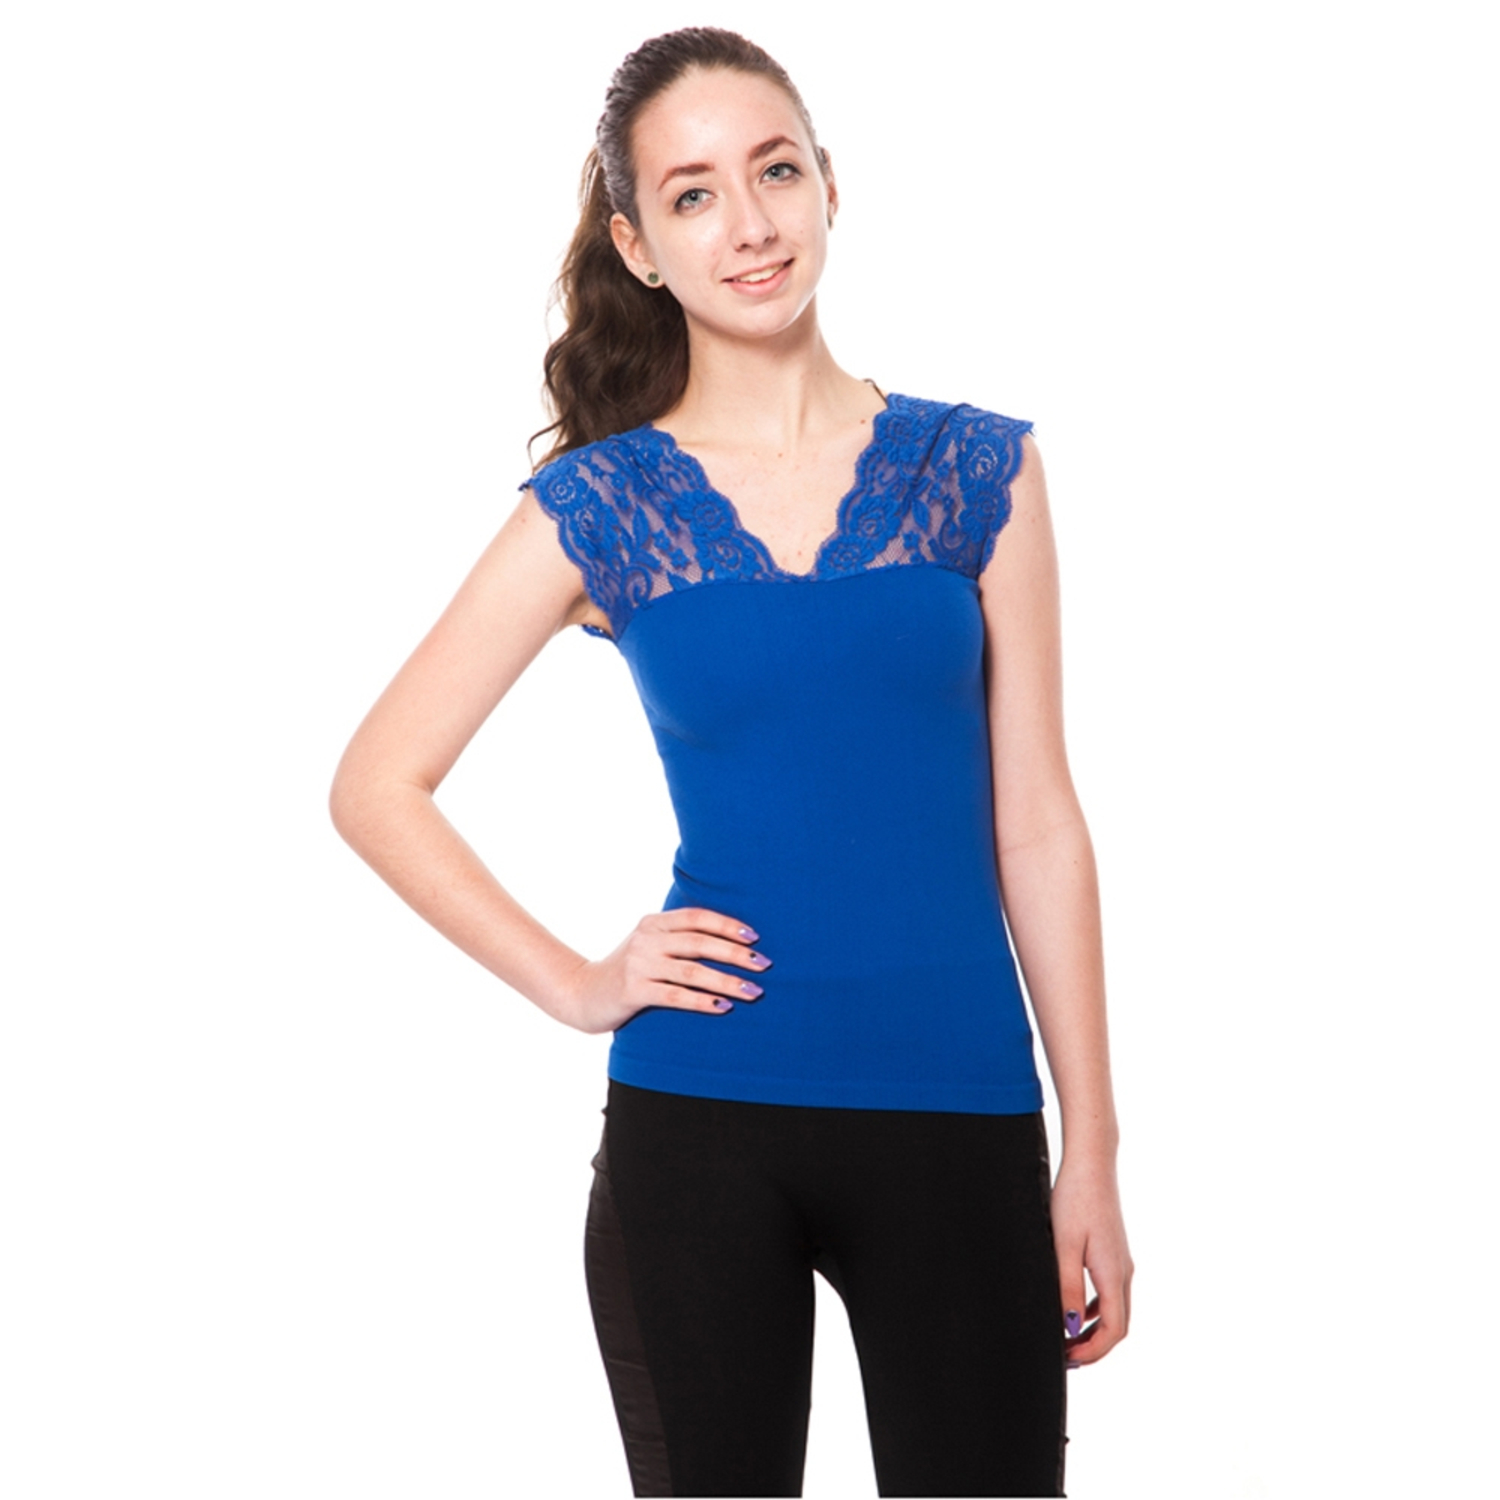 Women's V Neck Floral Lace Shoulder Sleeveless Top (One Size Fits All) - Royal Blue